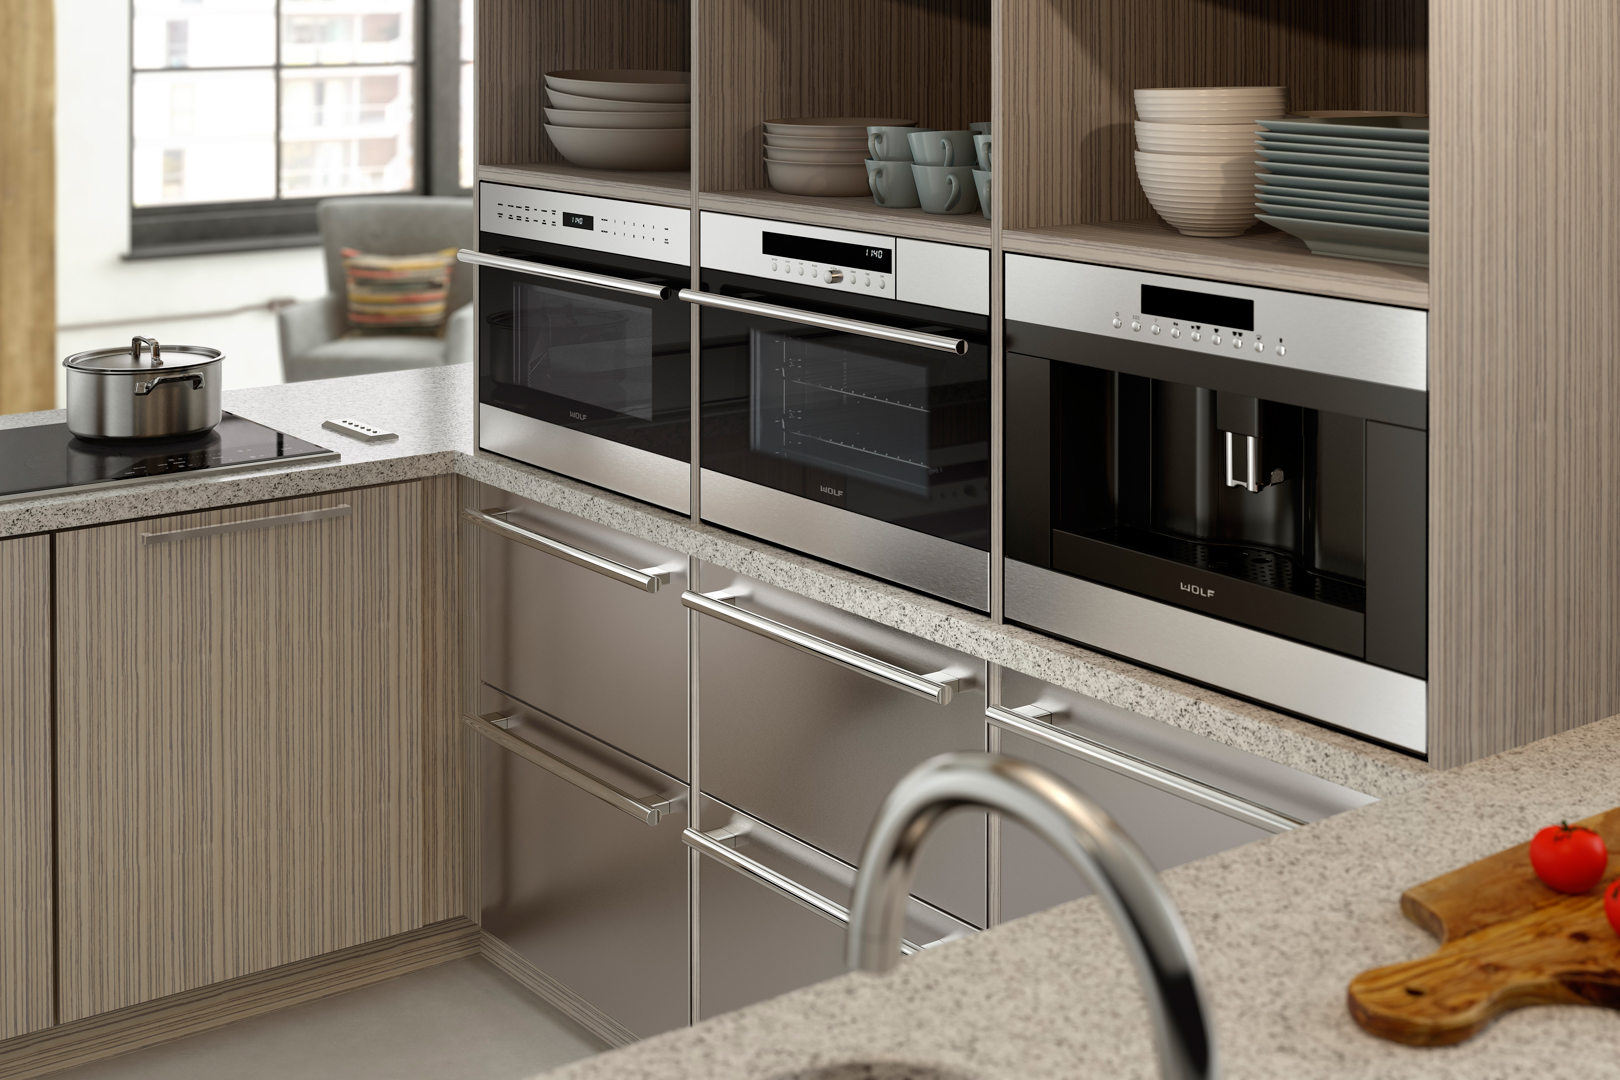 Elegant Cooking and Cleaning with Wolf, ASKO, and Waterstone